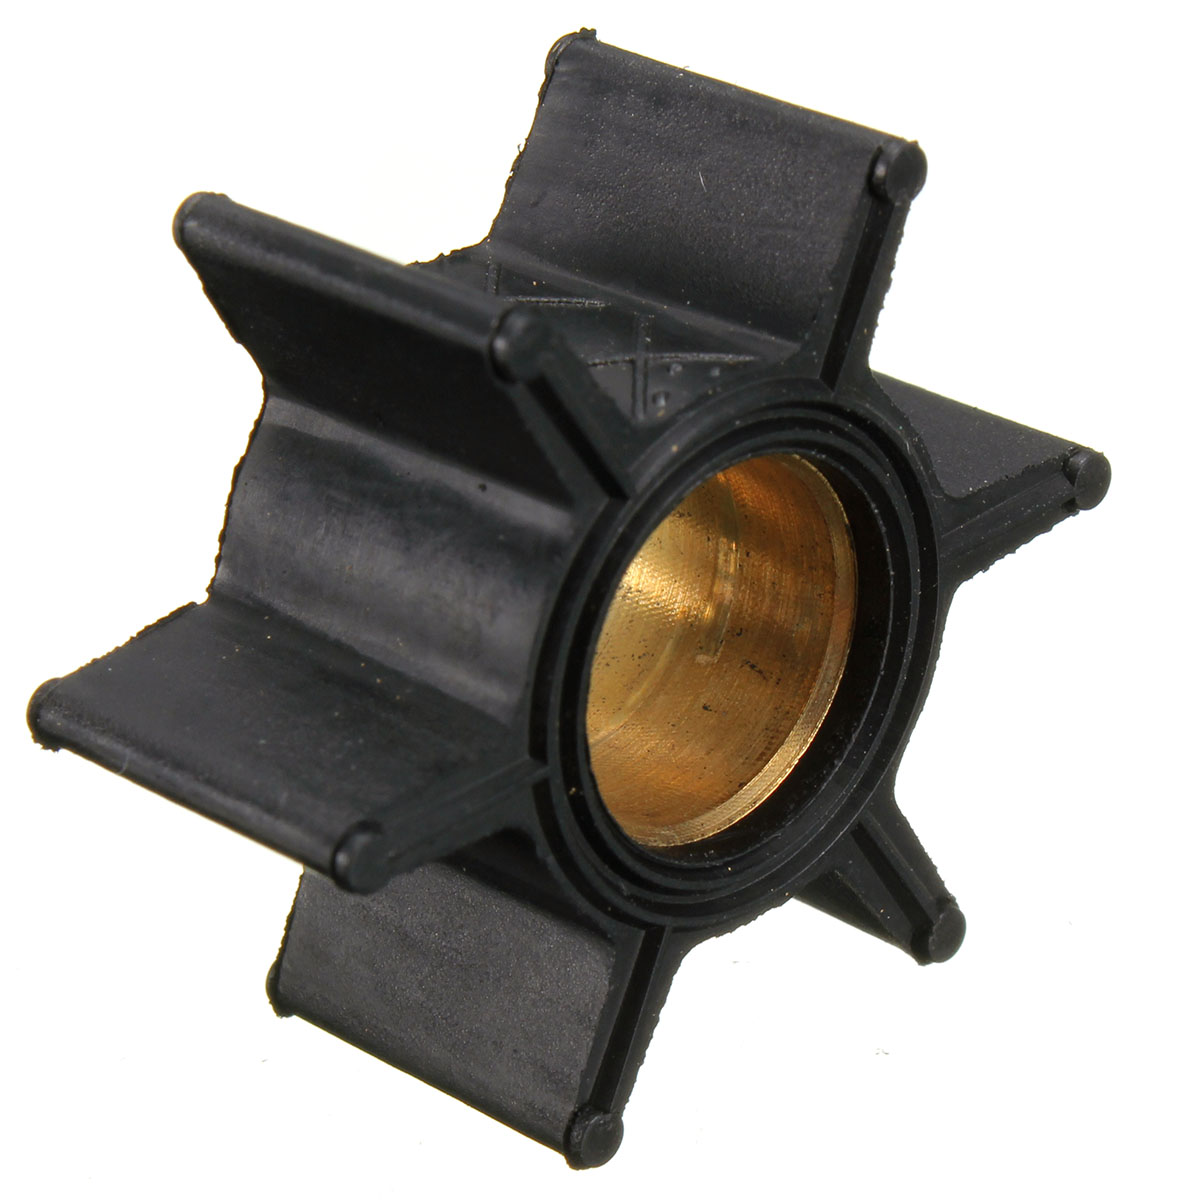 Outboard Motor Quicksilver Water Pump Impeller HP 47-89981 47-65957 18-3039 for Mercury/Mariner Outboard 4, 4.5, 6, 7.5, 9.8 image